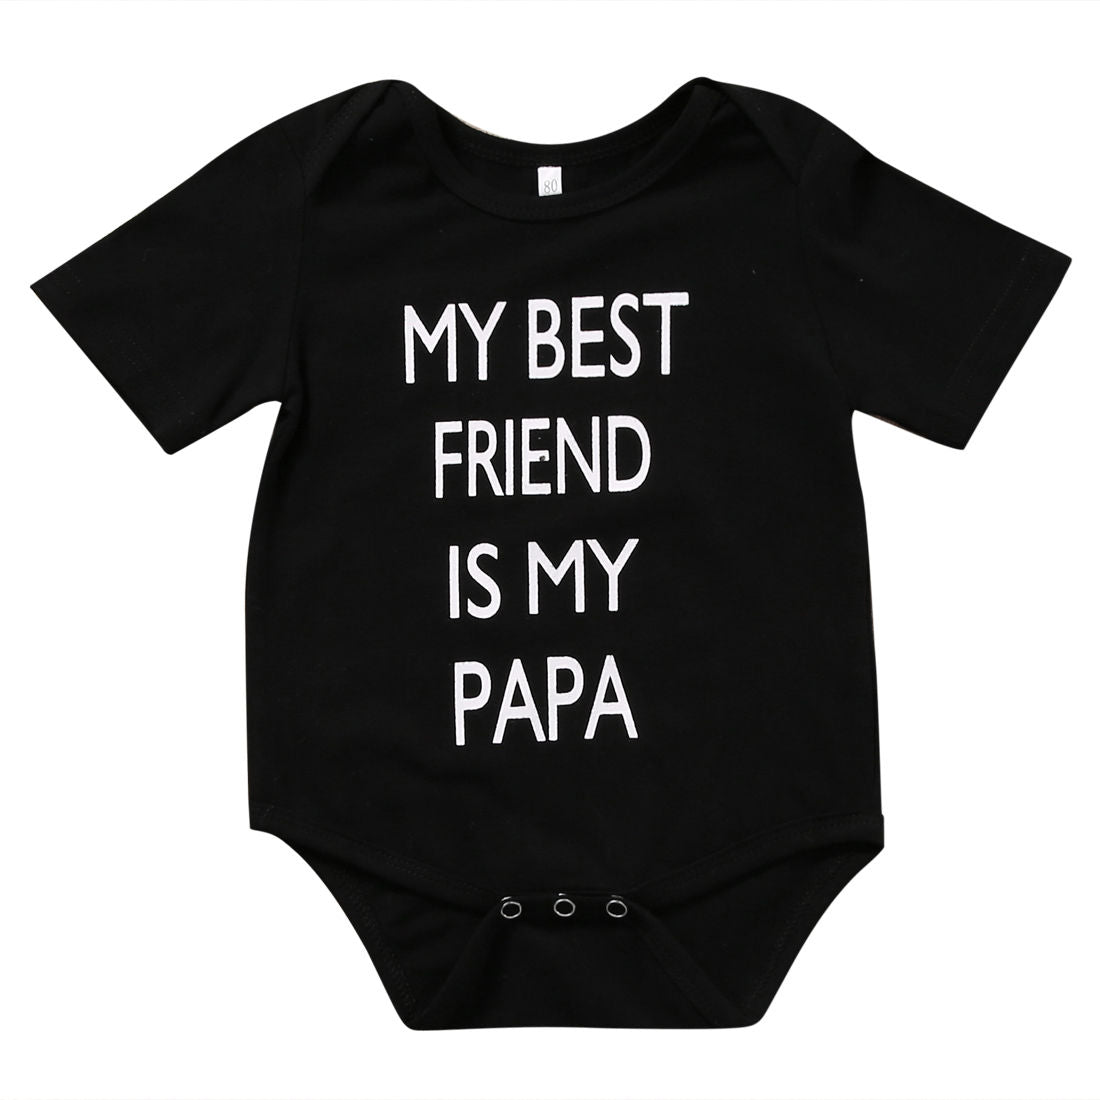 'My Best Friend is My Papa' Newborn Onesie